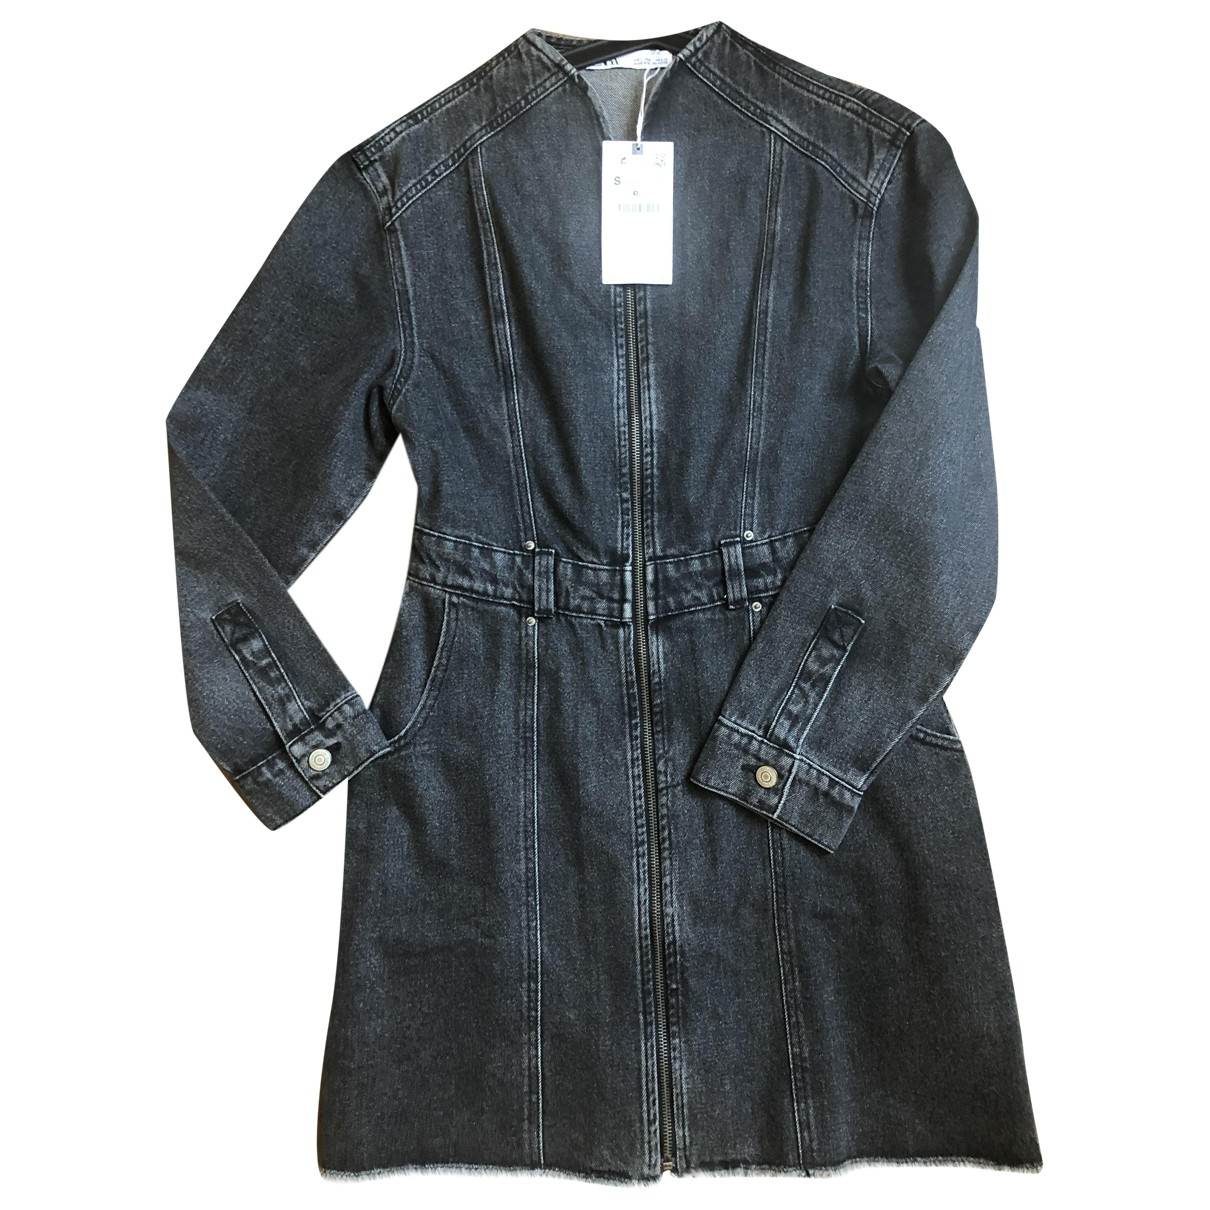 Zara \N Grey Denim - Jeans dress for Women 36 FR